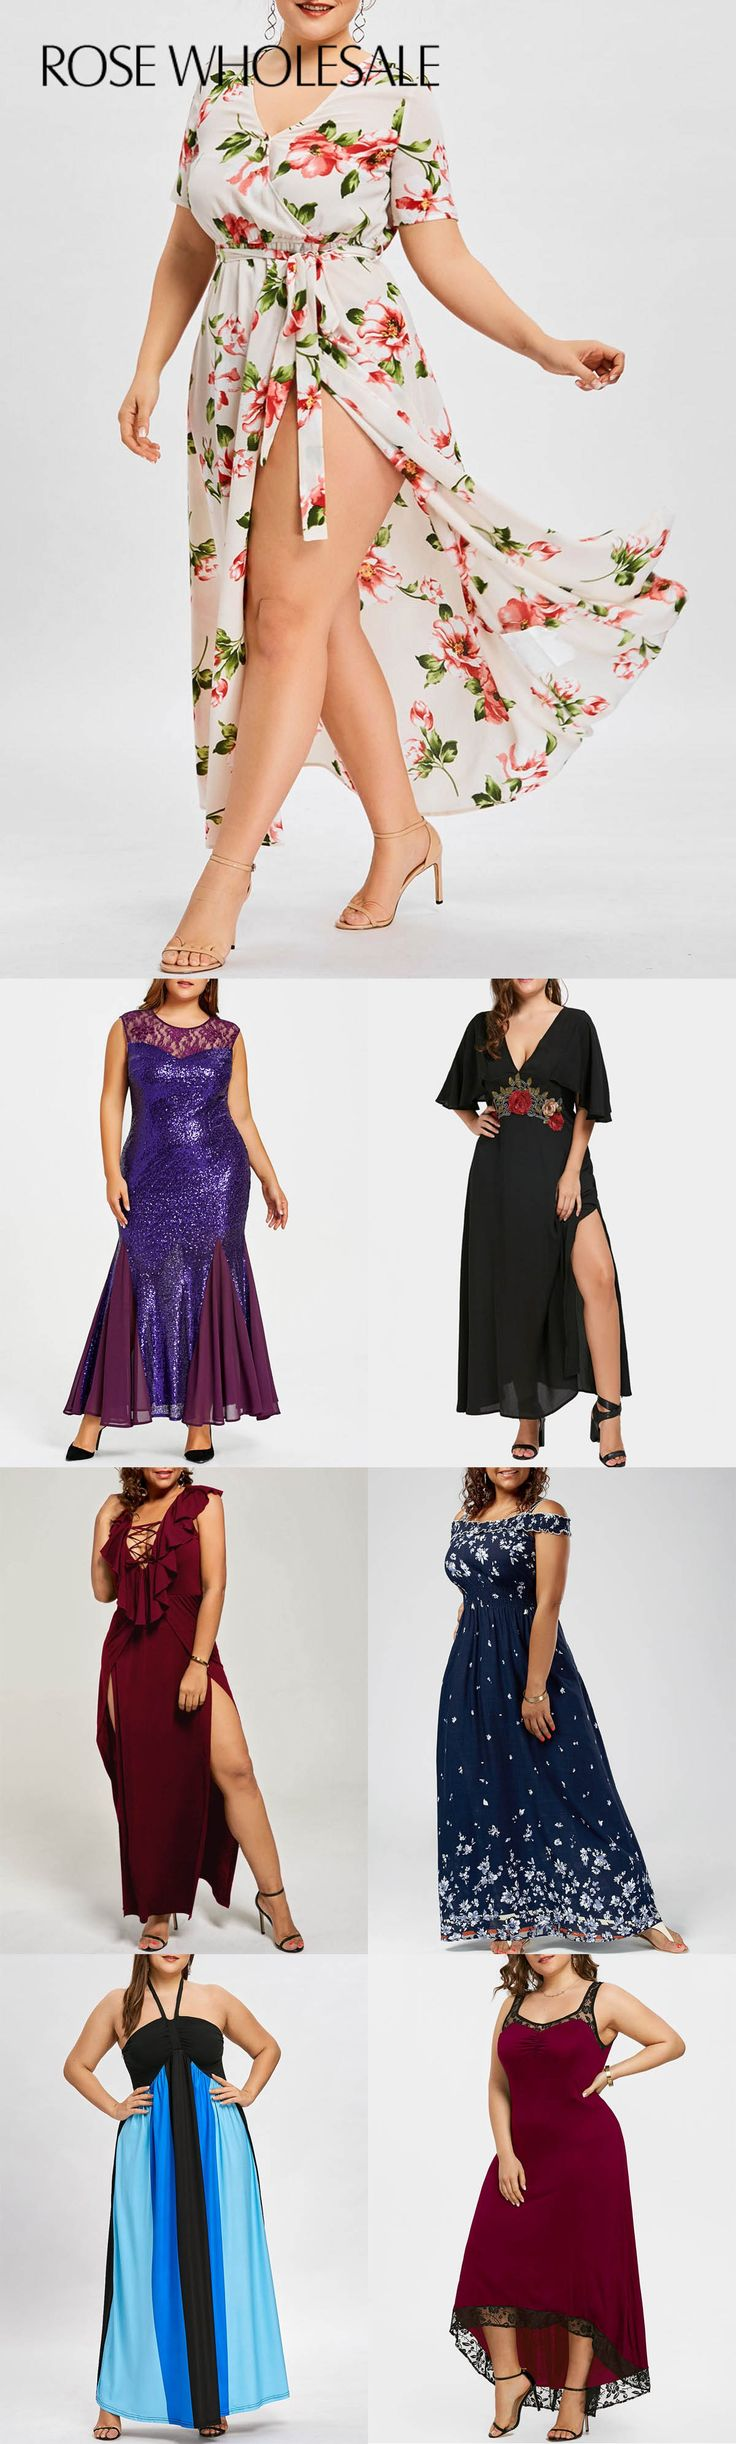 Up to 80% off, rosewholesale plus size maxi floral sequined dress for women | rosewholesale,rosewholesale.com,rosewholesale clothes,rosewholesale.com clothing,floral dress,rosewholesale plus size,rosewholesale dress,maxi dress,sequined dress,beach dress,spring break outfit, spring outfit, dress | #rosewholesale #plussize #maxidress